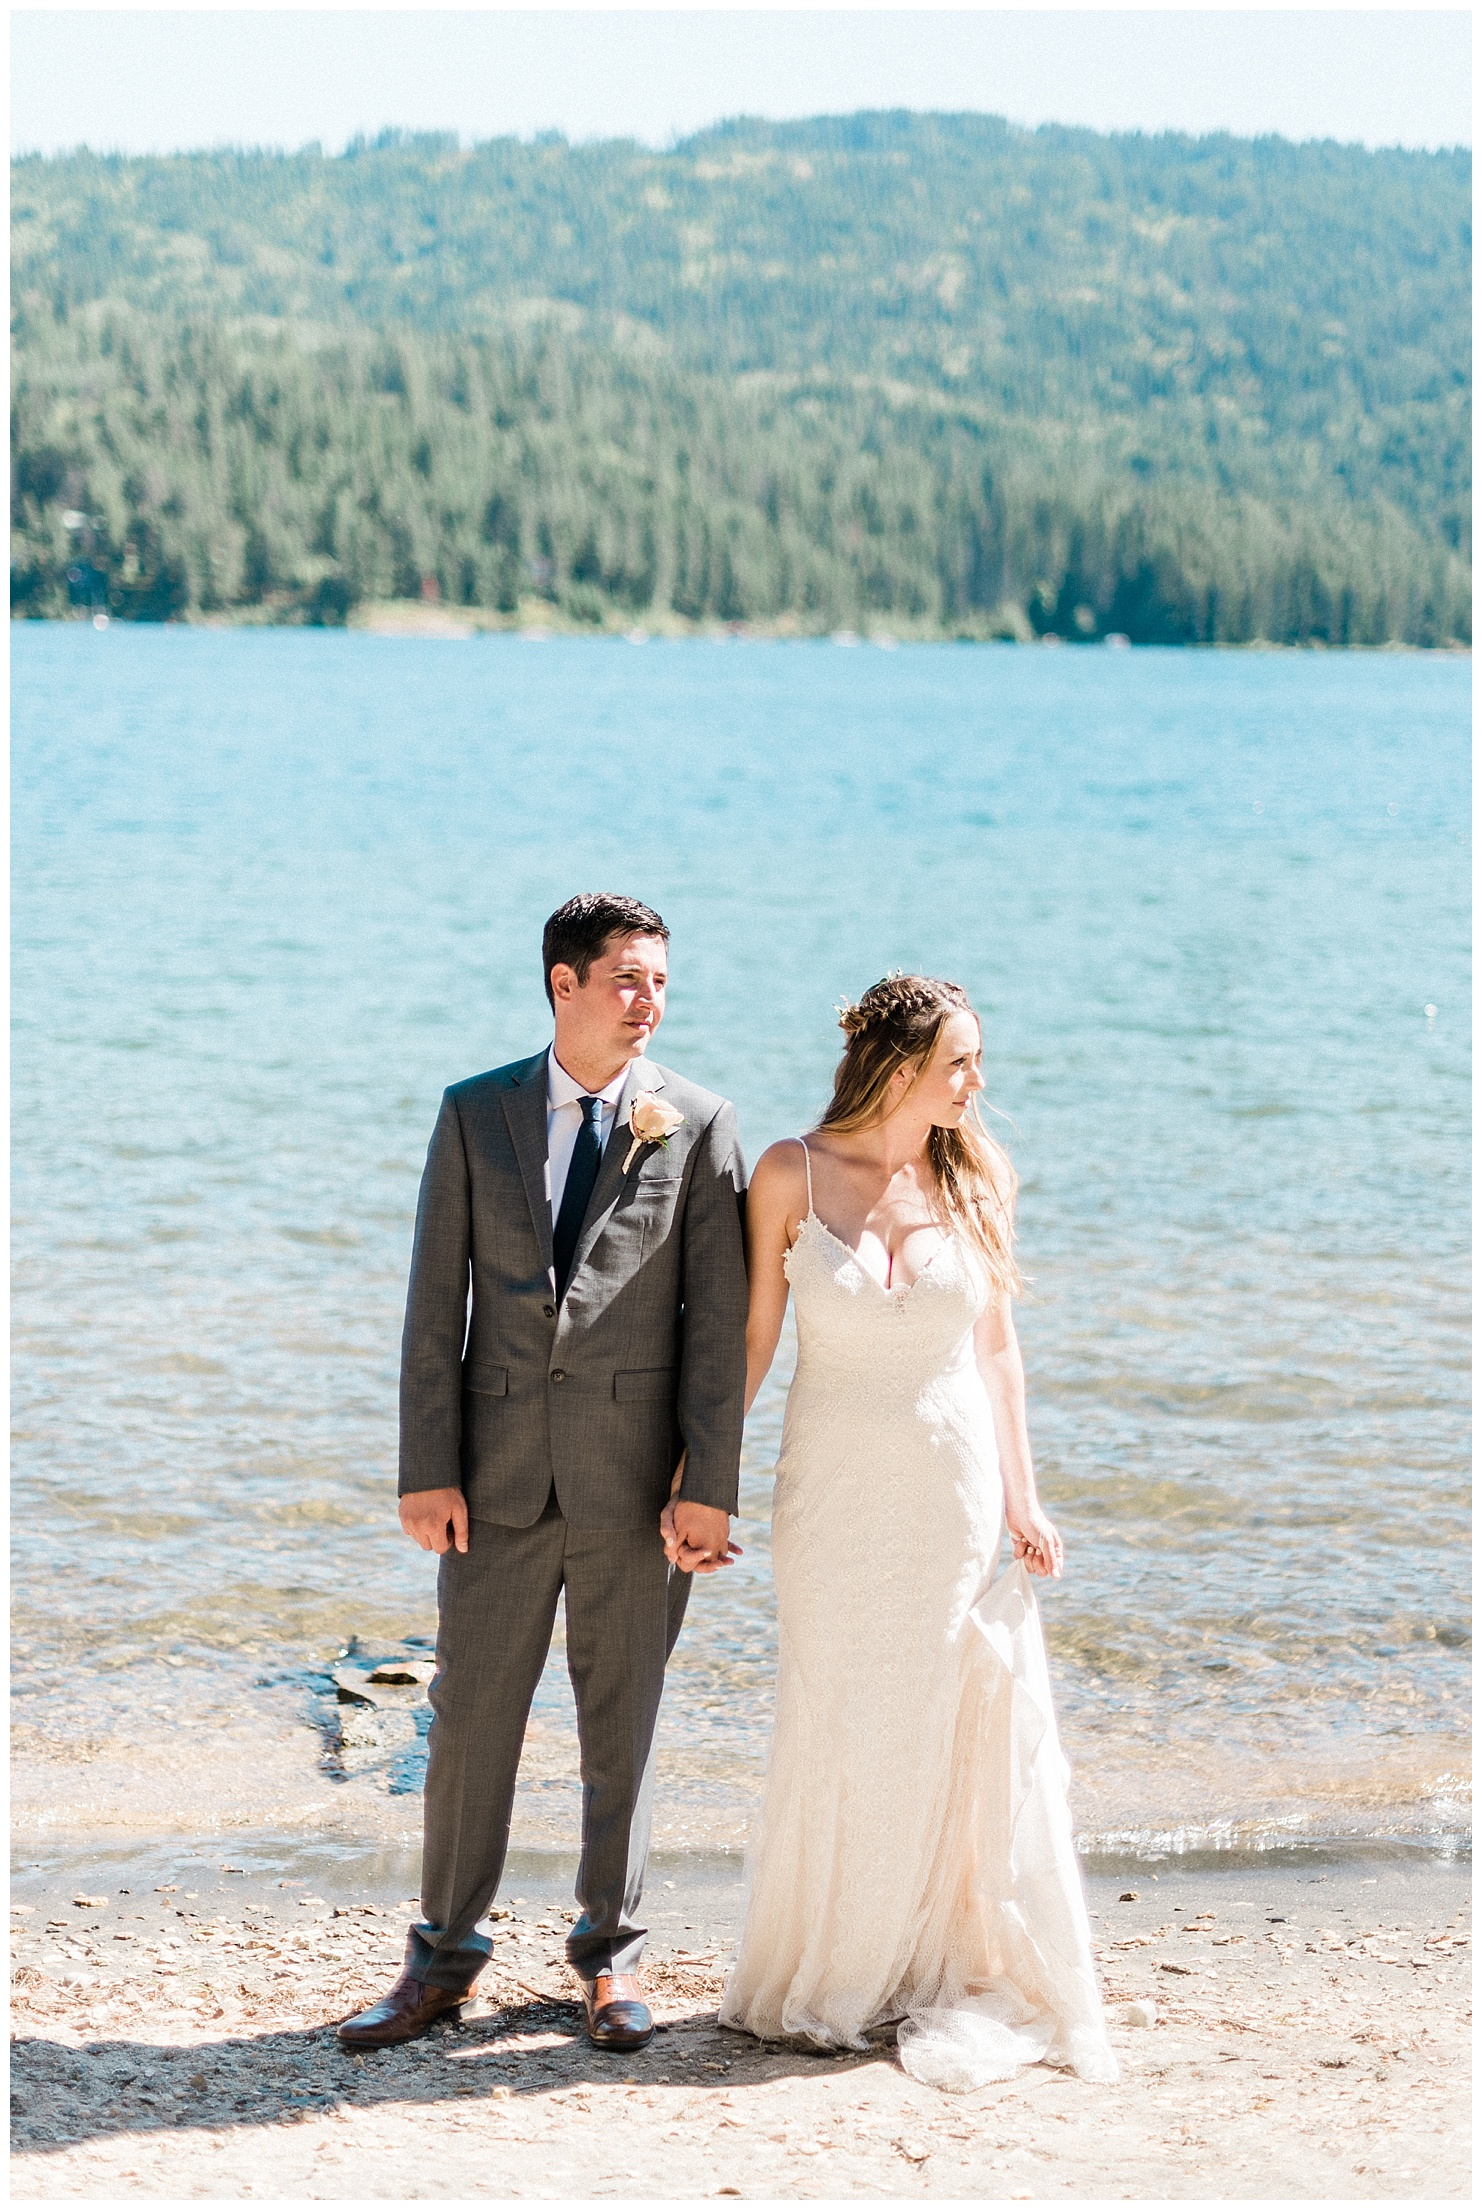 Portraits of a bride & groom on Lake Coeur d'Alene  by Forthright Photo